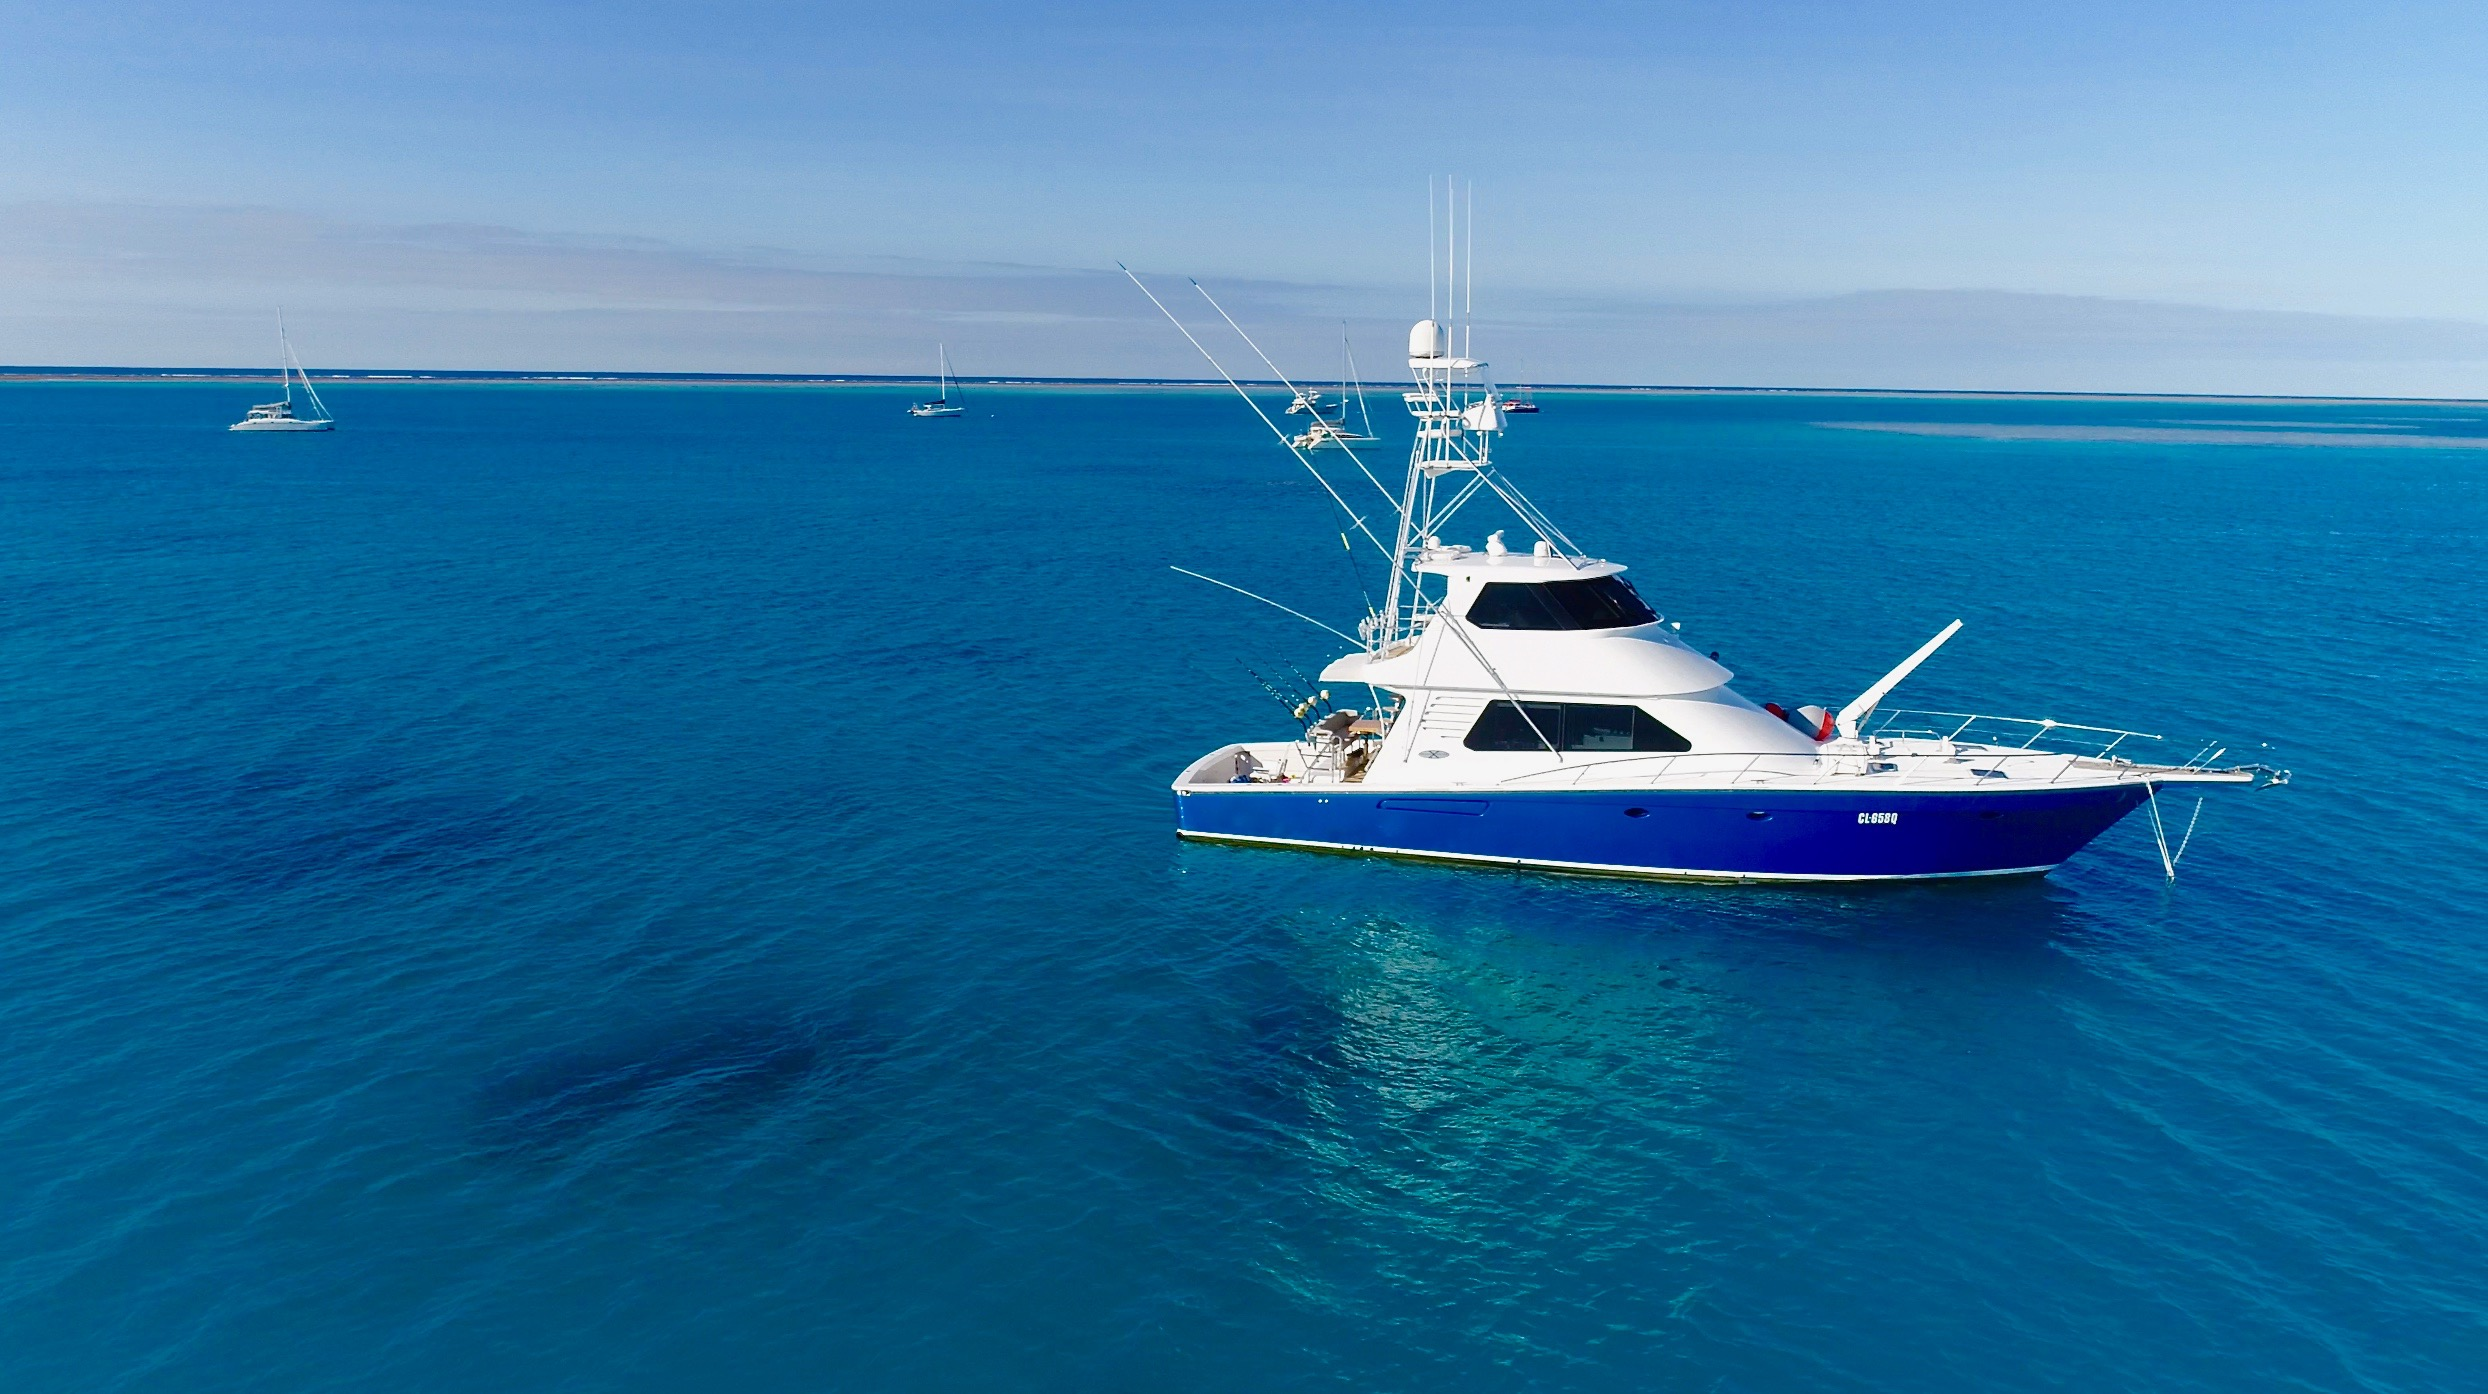 Brilliant Company Topnotch Game Fishing luxury charters airlie Beach whitsundays charter options